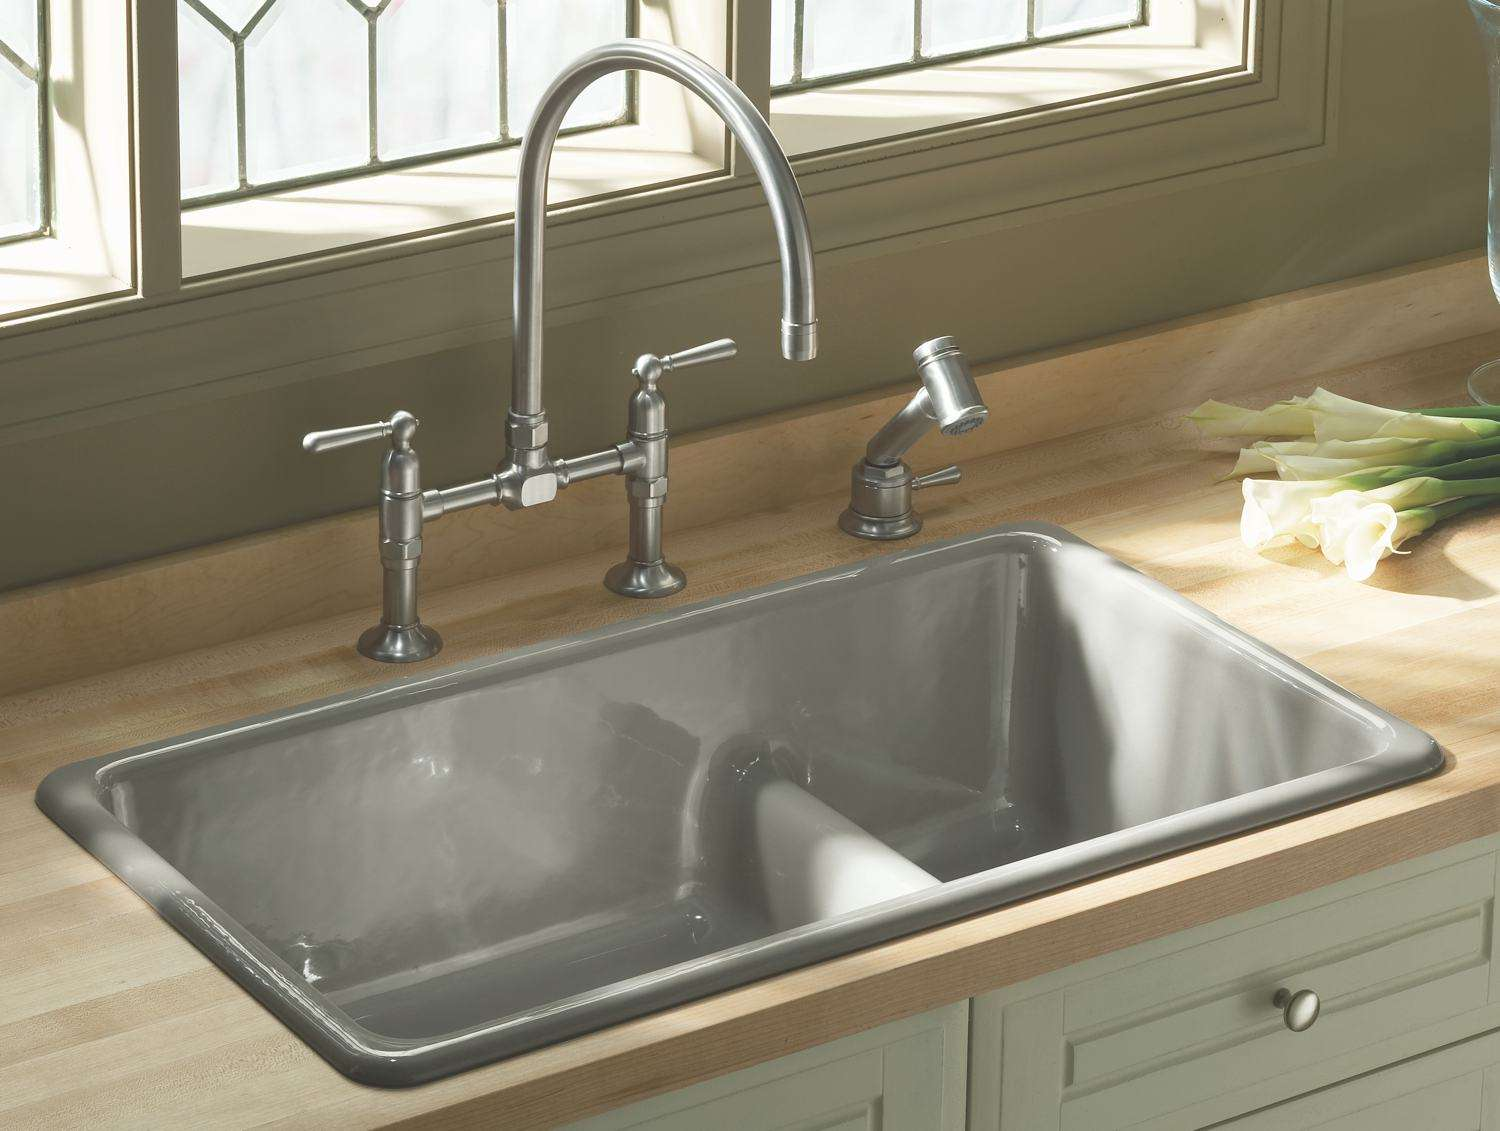 Kitchen Sink White Porcelain Undermount Amazon